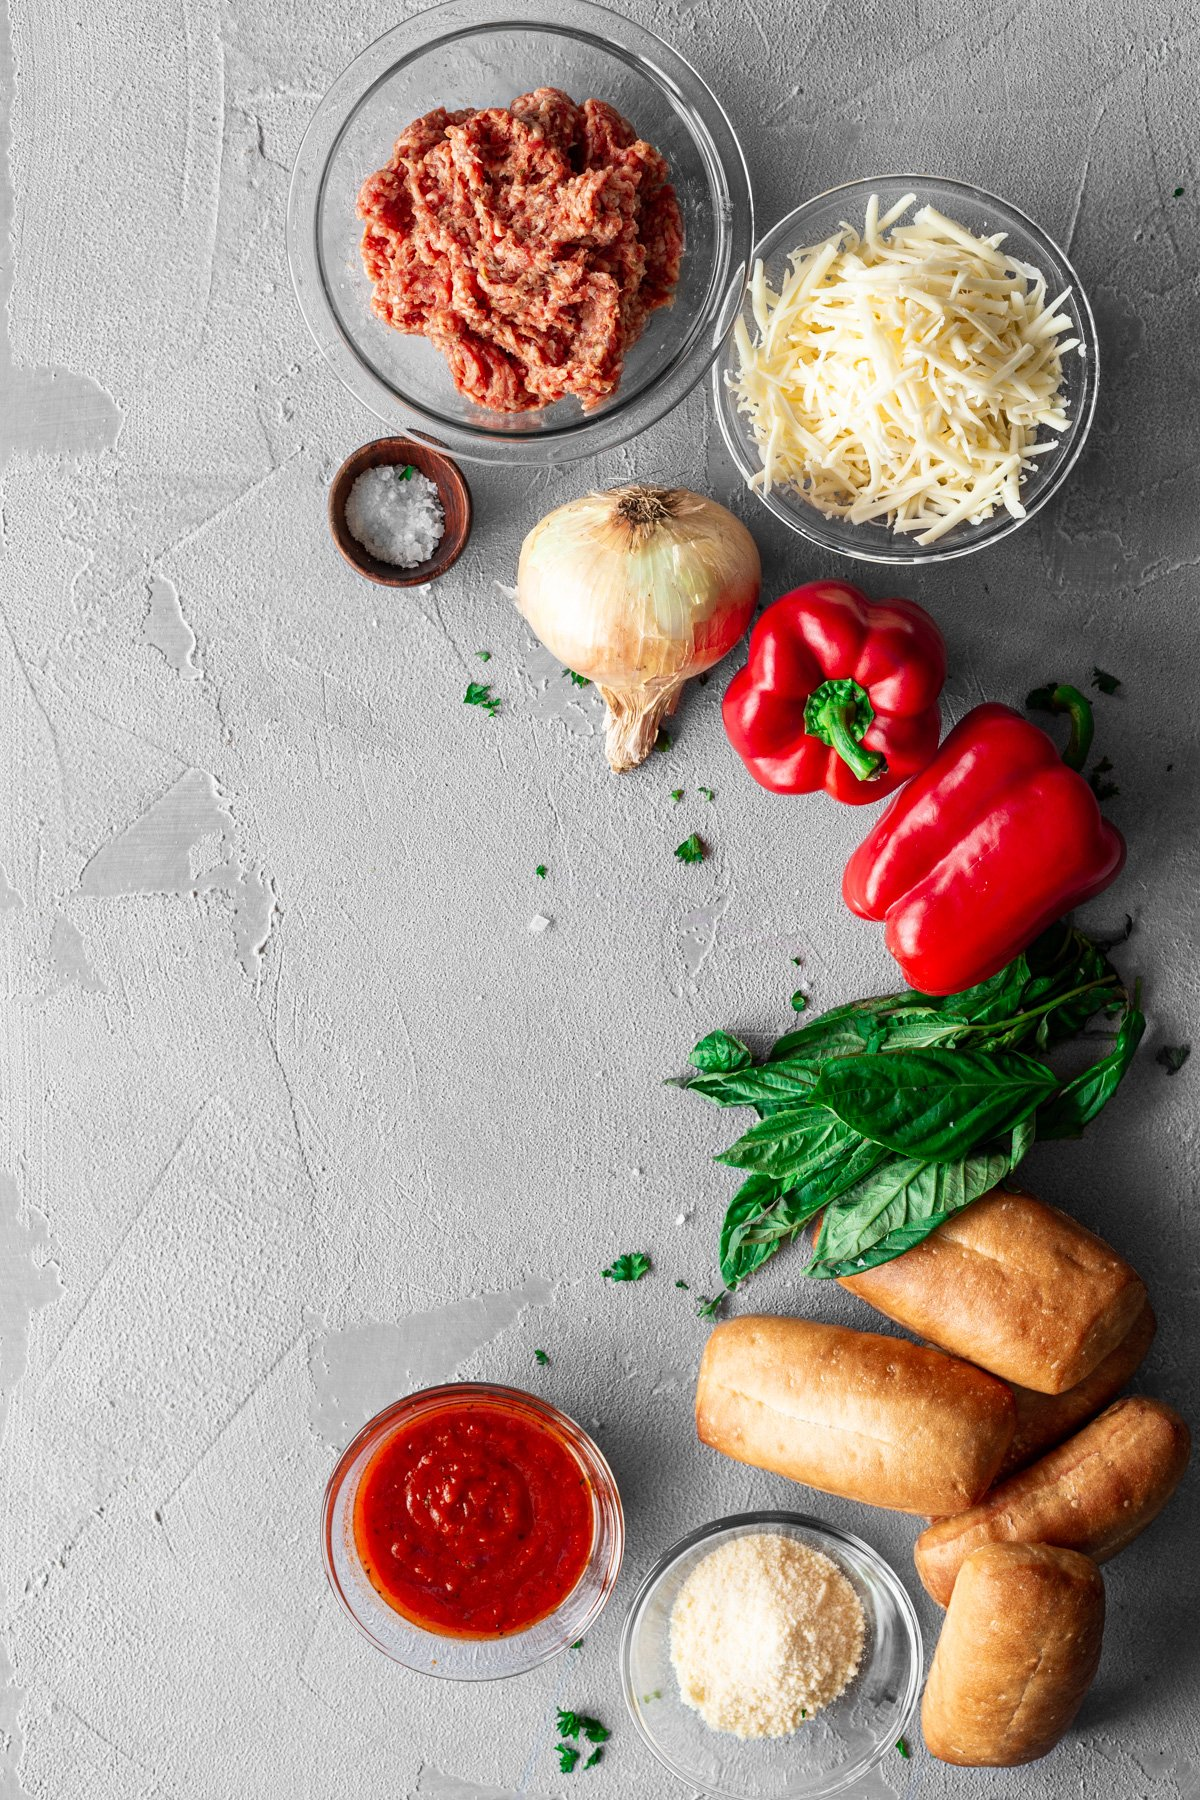 ingredients for sausage and peppers sloppy joe sliders on a grey background